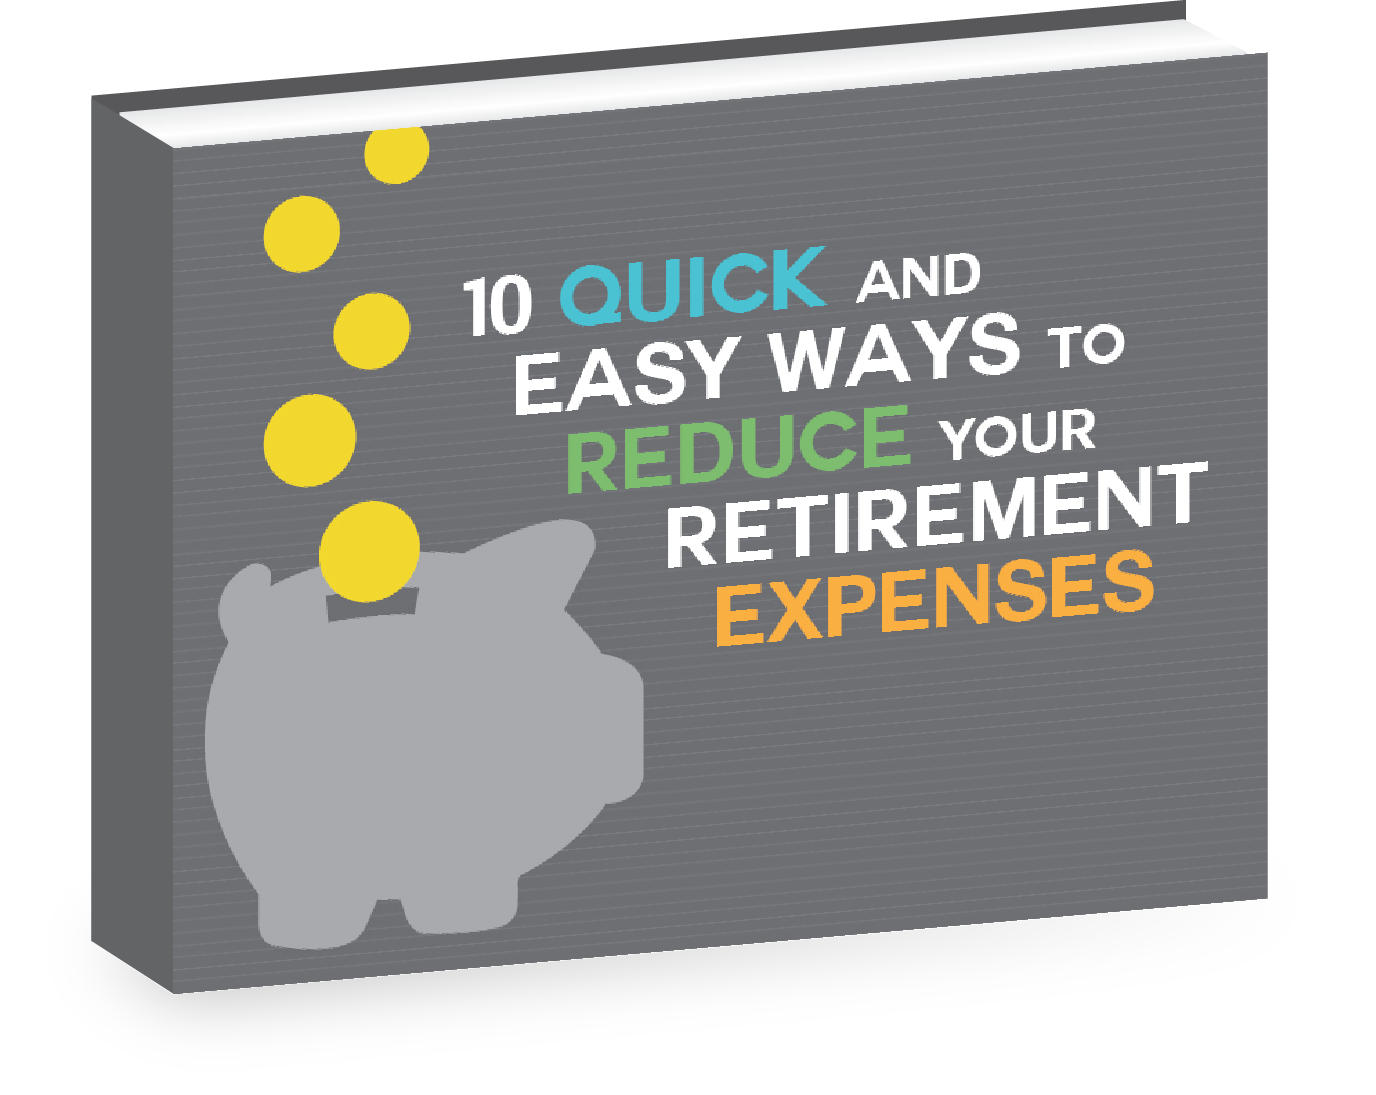 10 Quick and Easy Ways to Reduce your Retirement Expenses